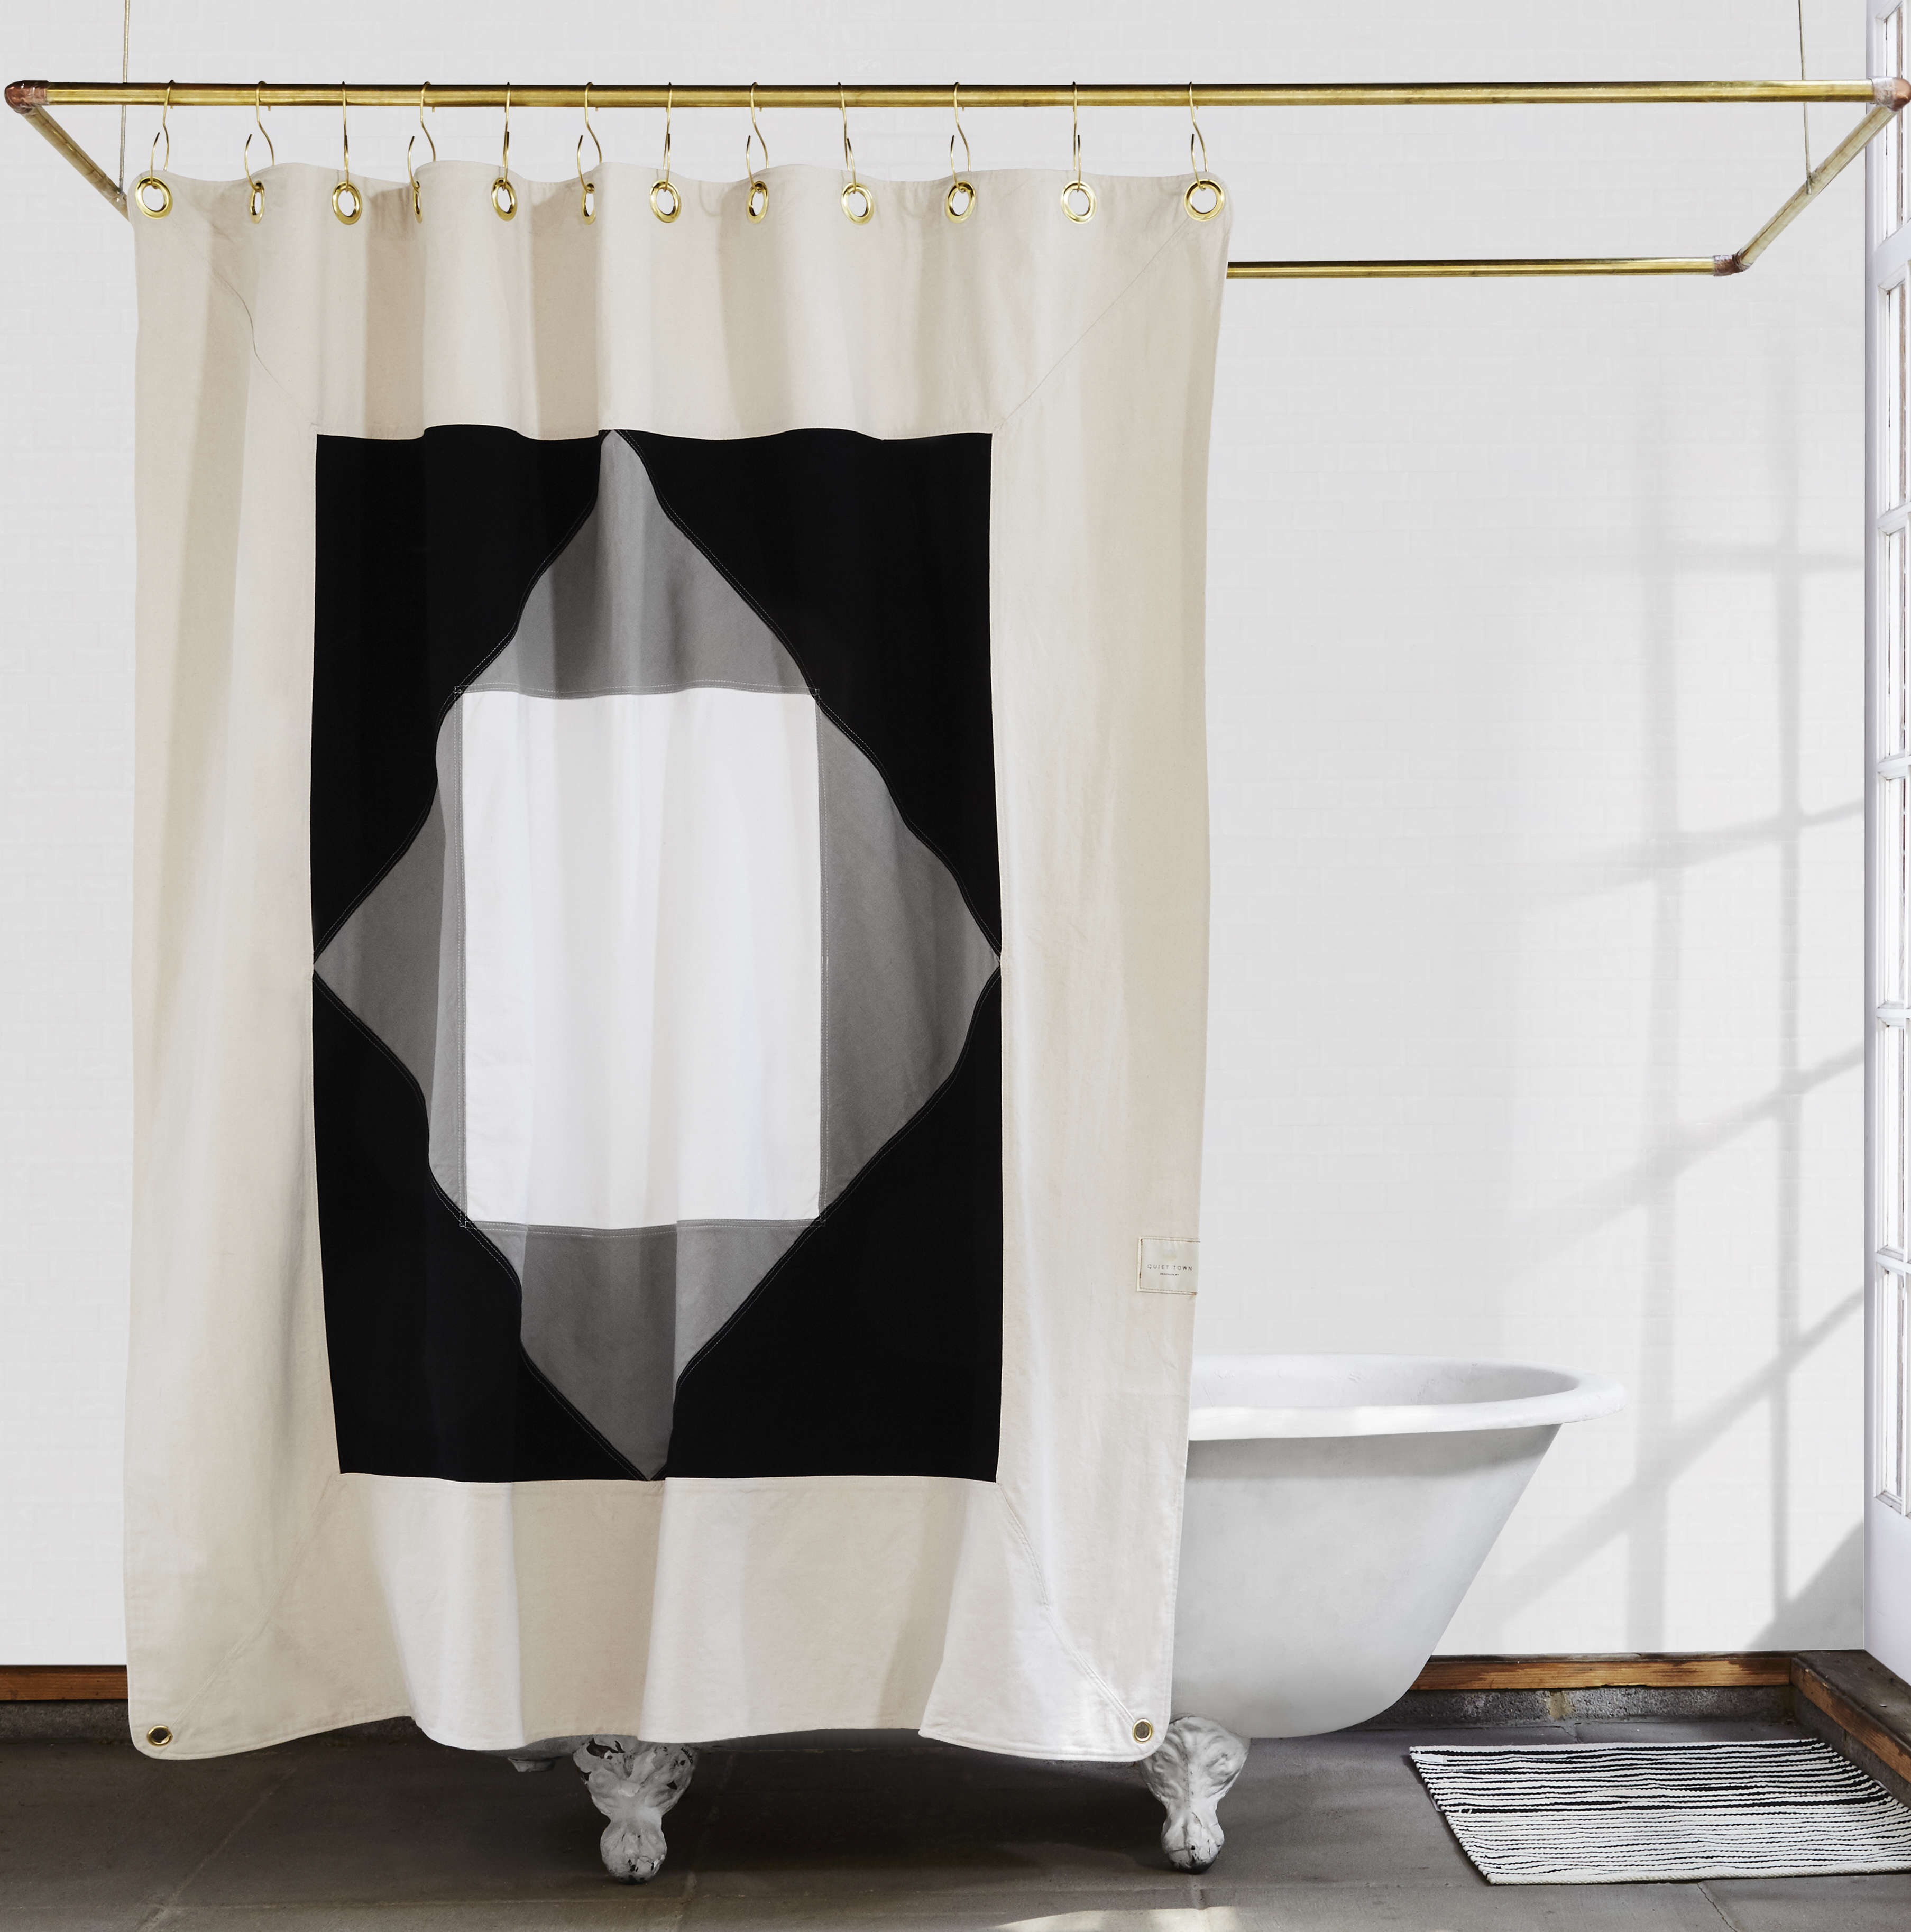 Statement Shower Curtains From Quiet Town Plus Glamorous Hooks